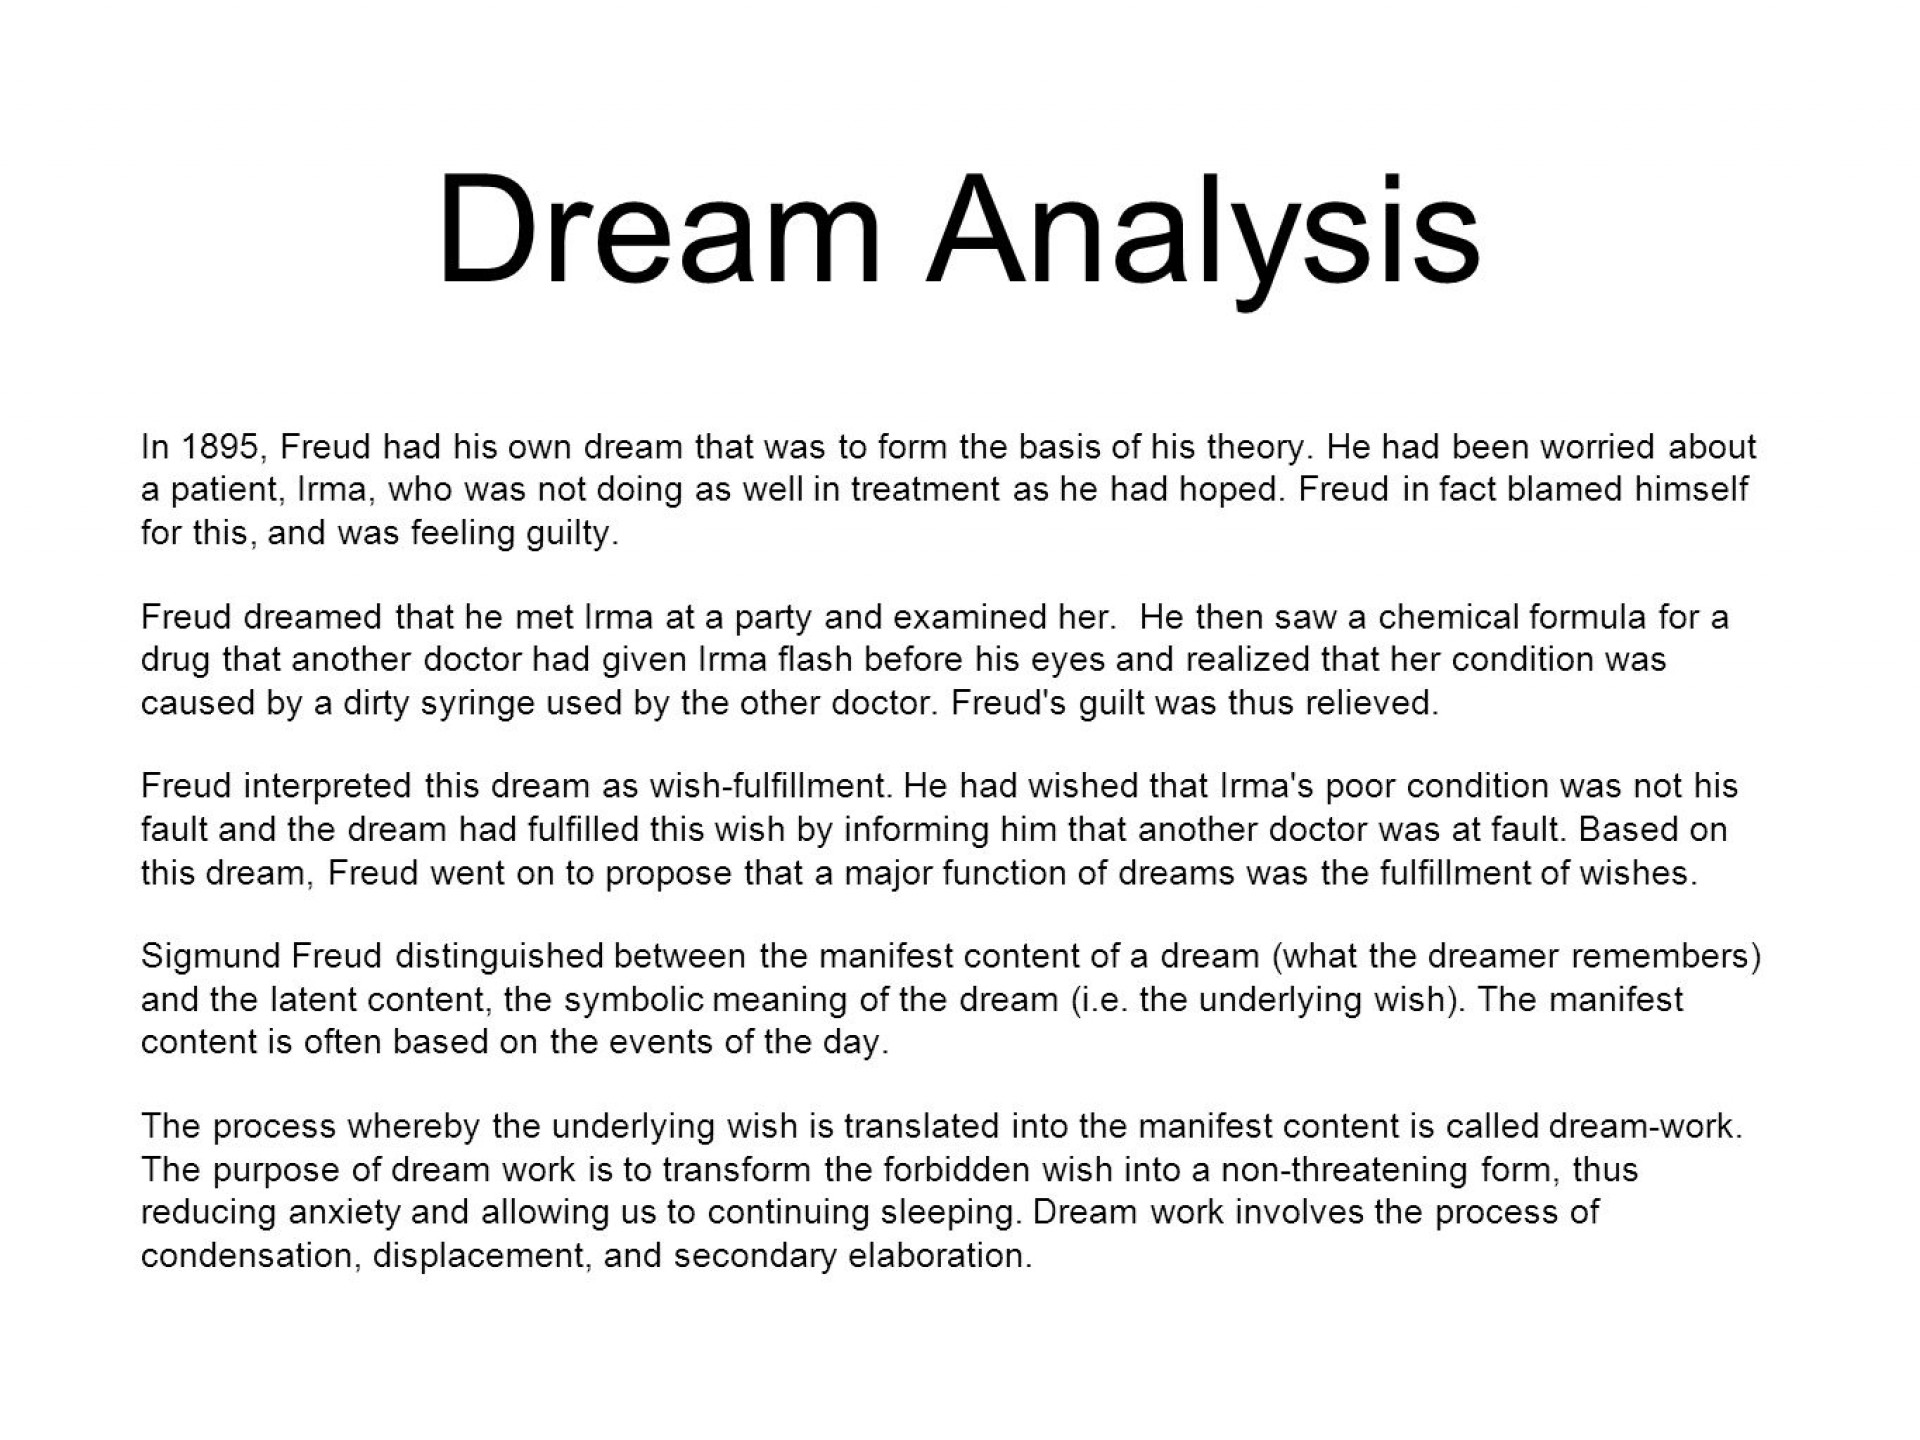 016 Research Paper Dreamanalysis Psychology Topics On Rare Dreams Articles Papers 1920